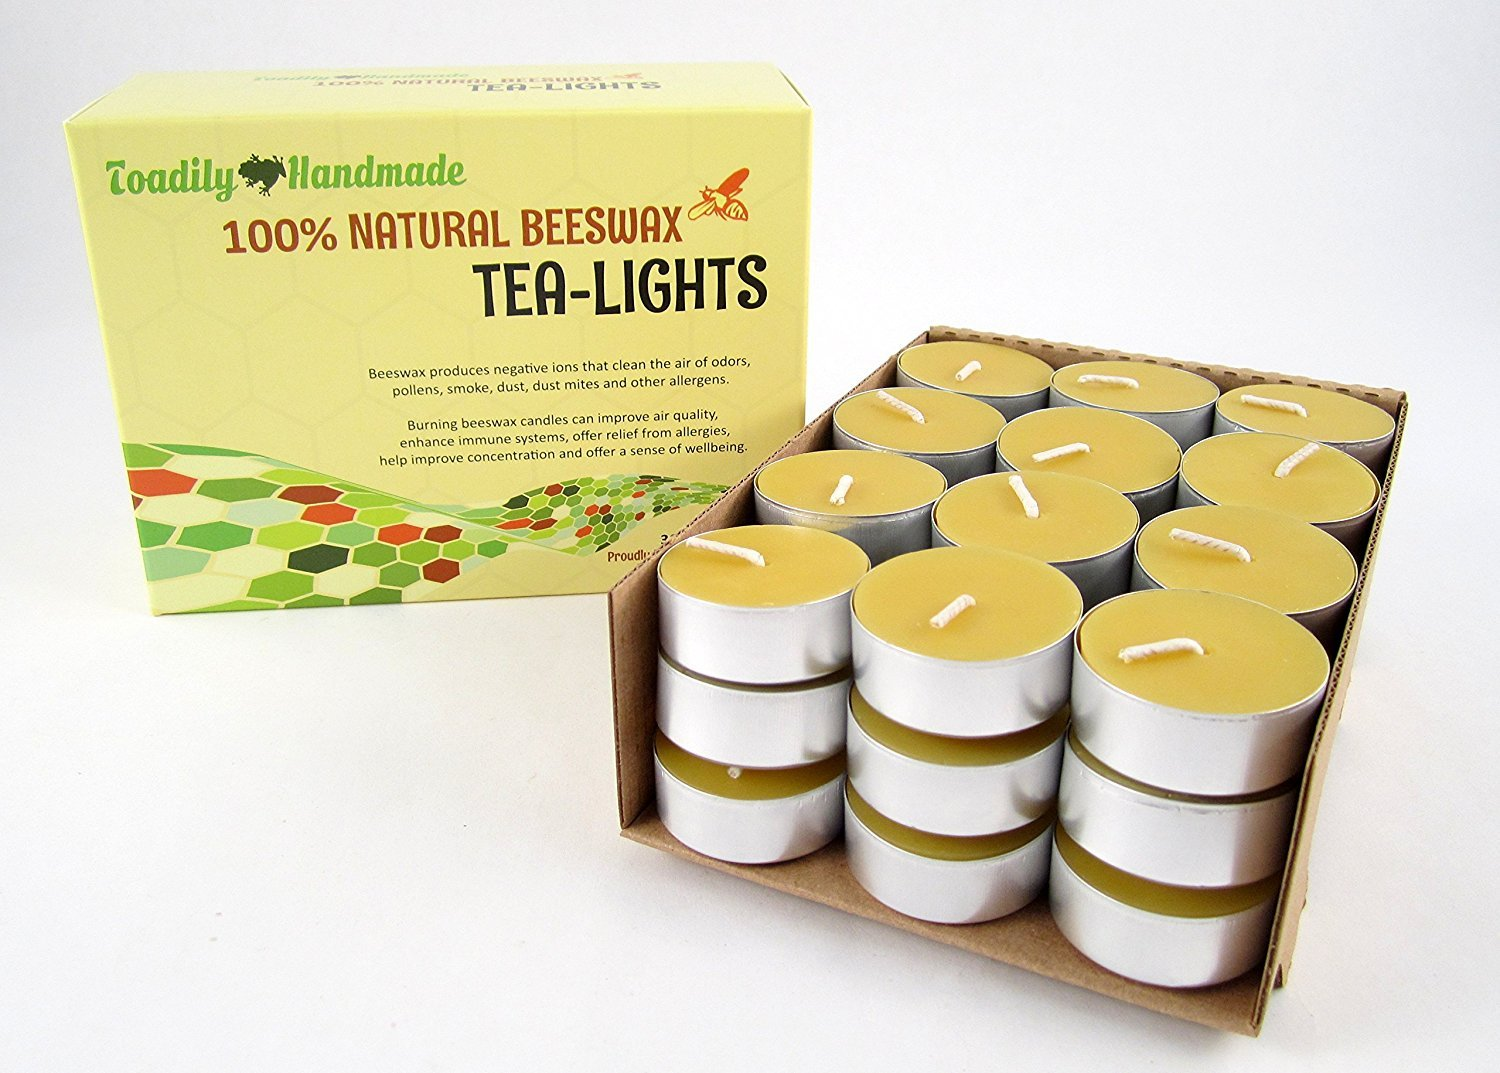 36 Beeswax Tea-Light Candles in NATURAL - Metal Cups - 100% Beeswax Candles Toadily Handmade TeaLights-5M-Natural